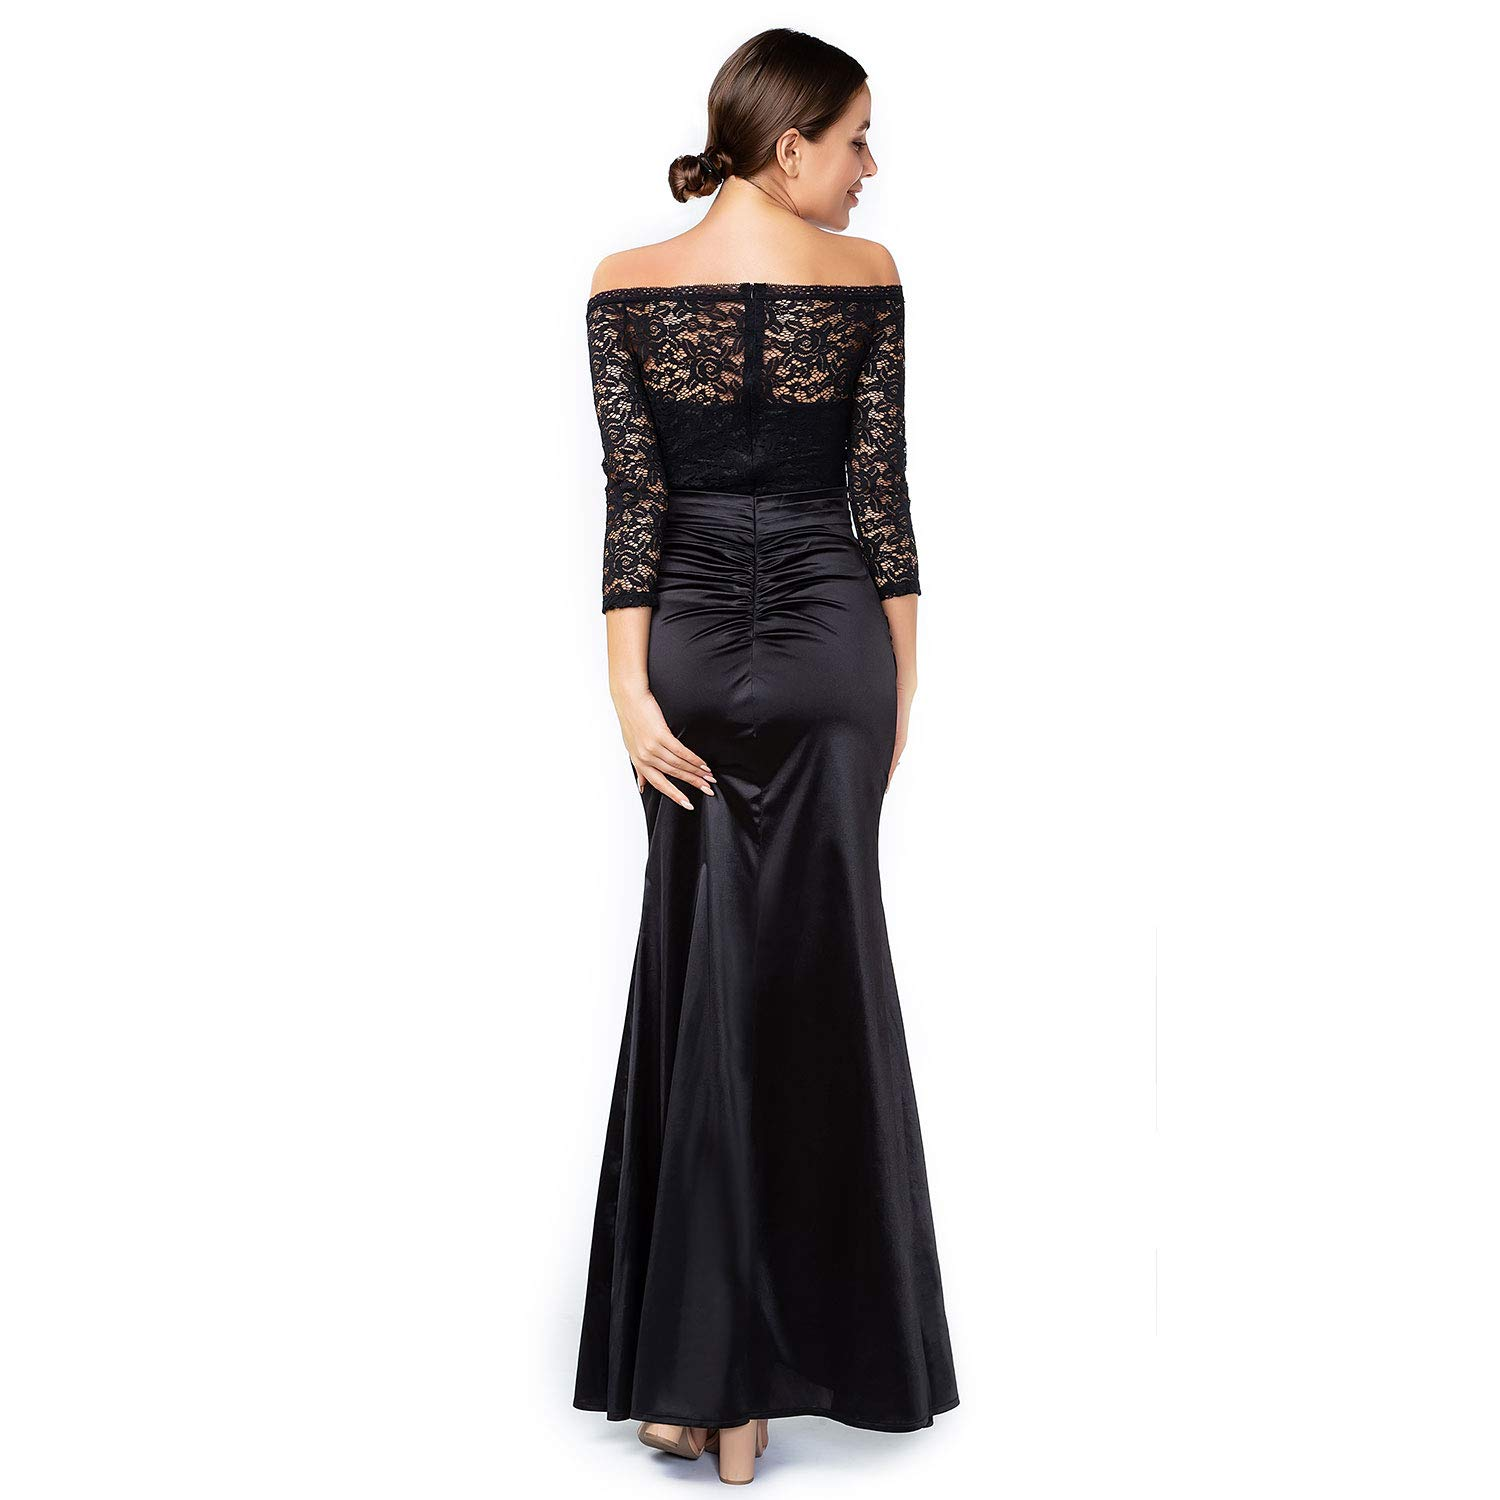 38716fcea591 Amazon.com: Sirhao Maxi Vintage Black Long Sleeve Dress for Women Floral  Lace: Clothing